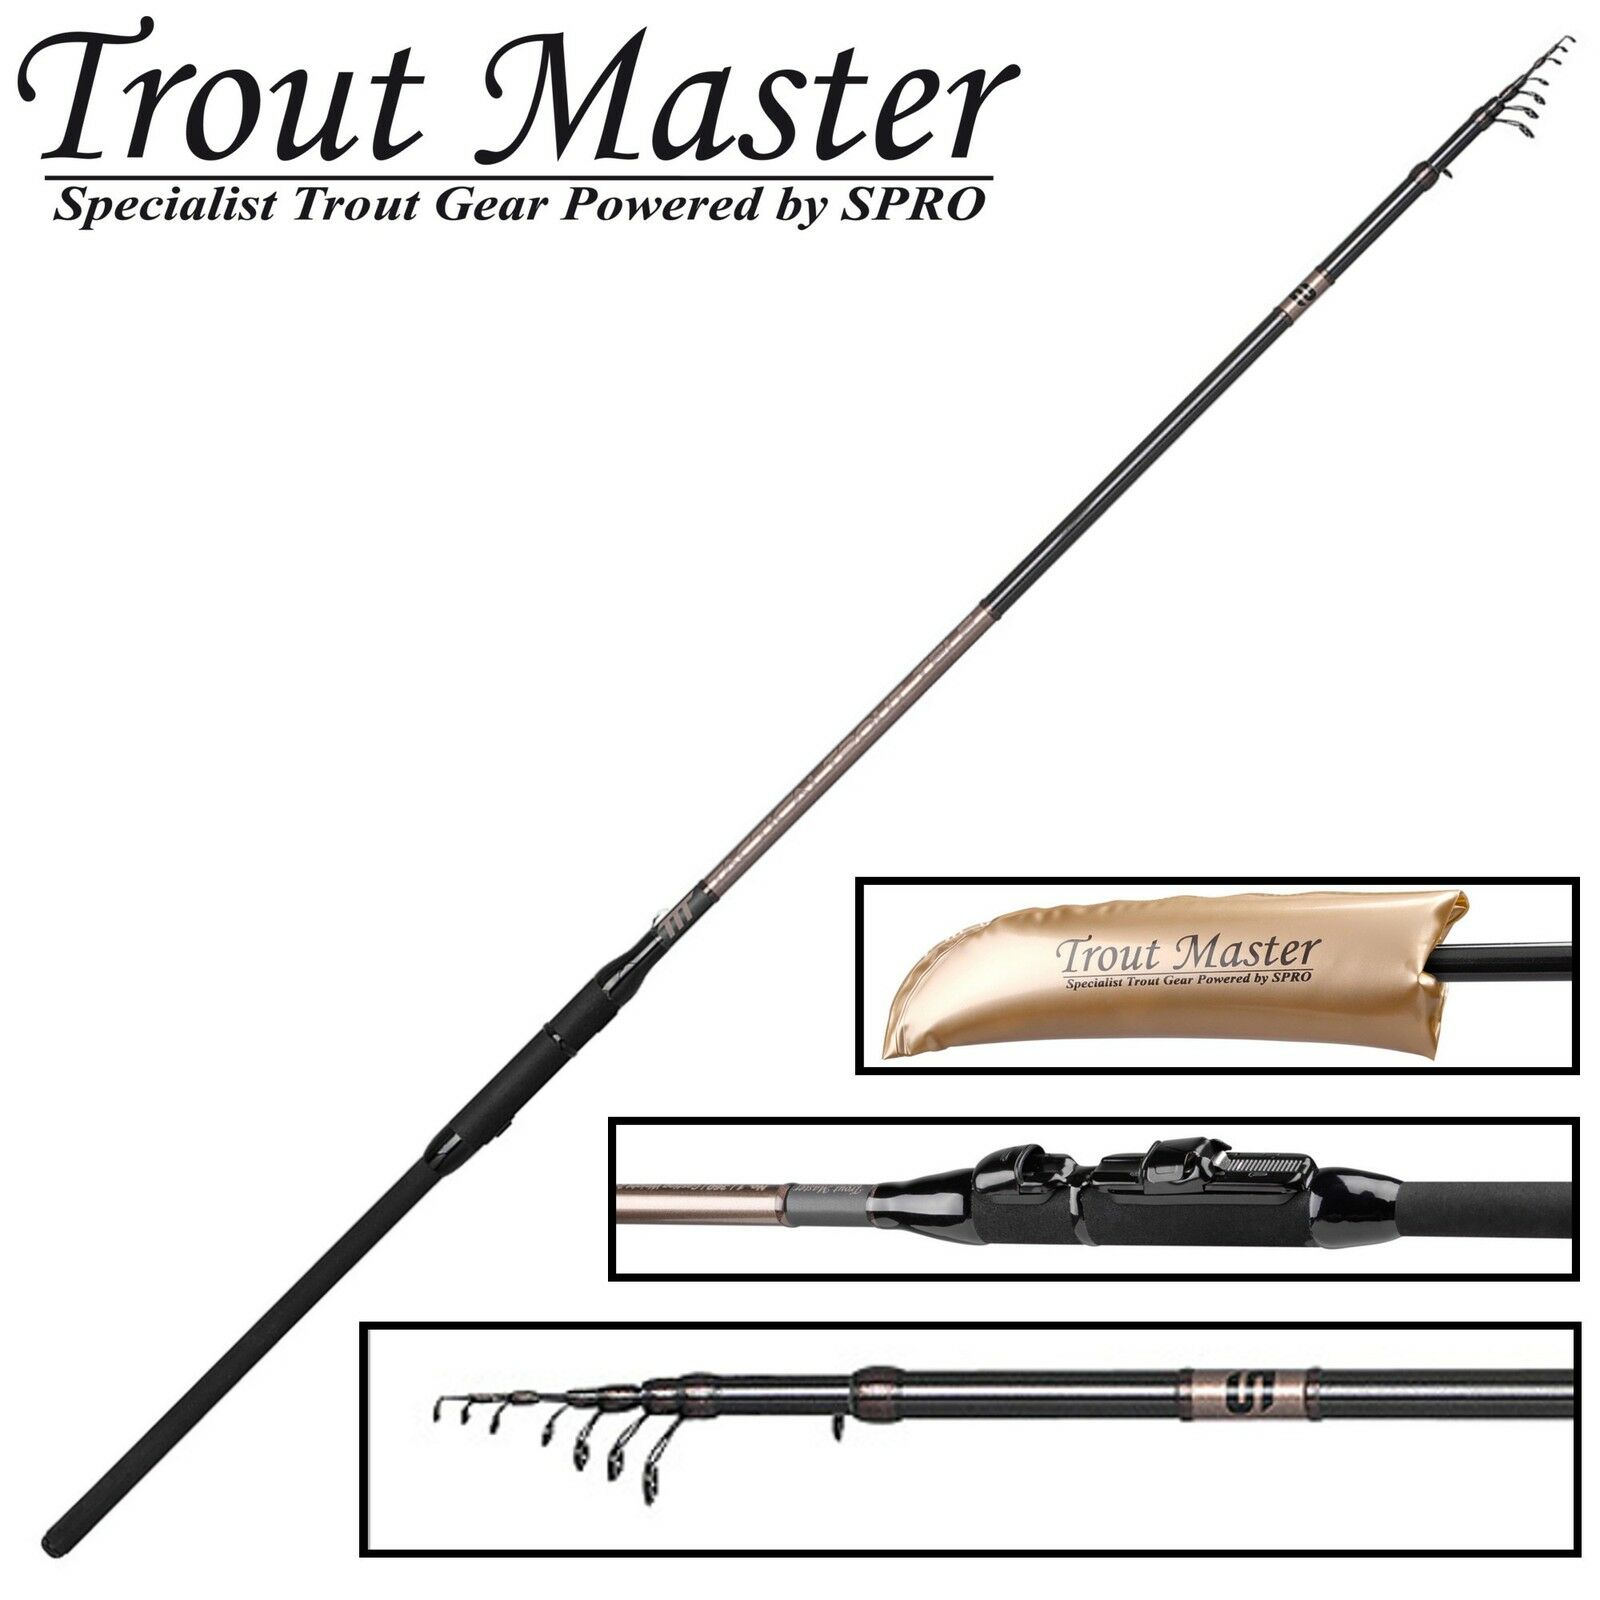 Trout Master Tactical Trout Trout Trout tele 3,90m 20-40g - TROTE stadia, telescopico stadia b6fe9f